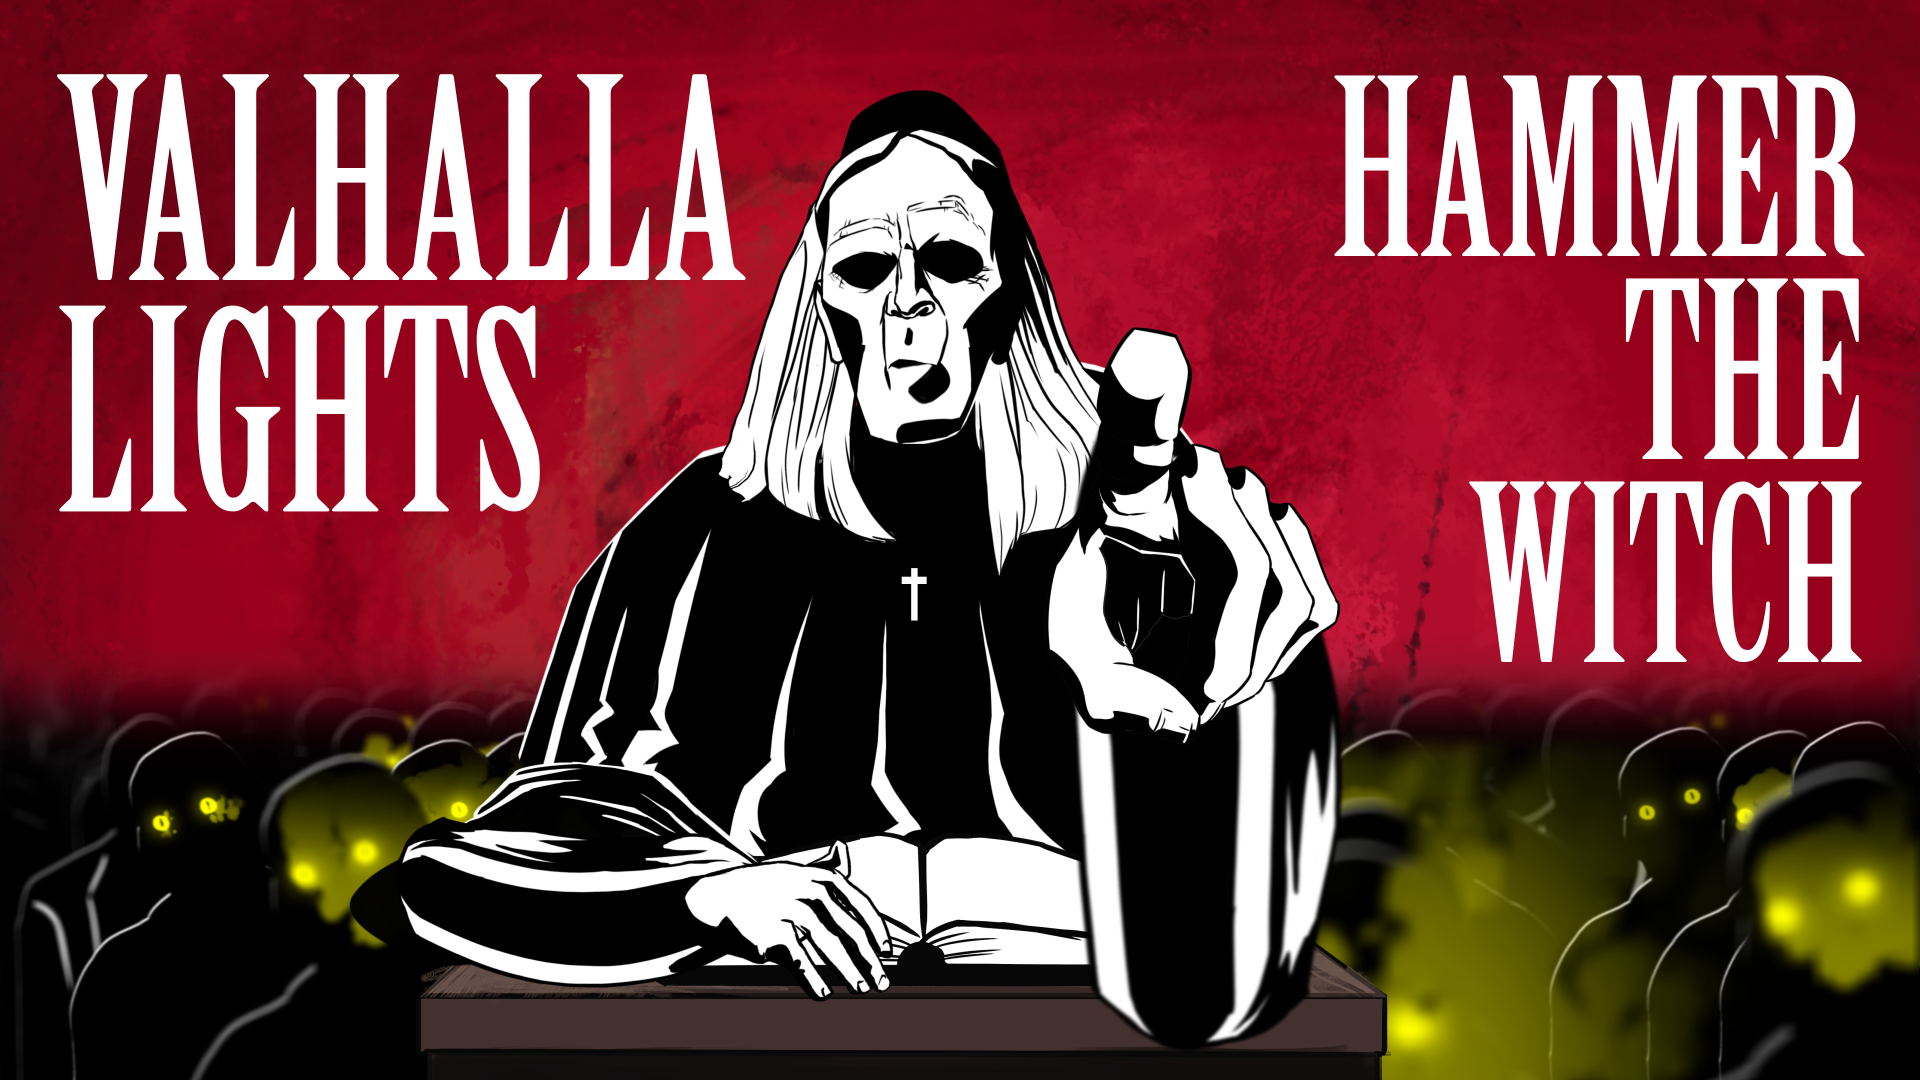 Valhalla Lights - Hammer The Witch